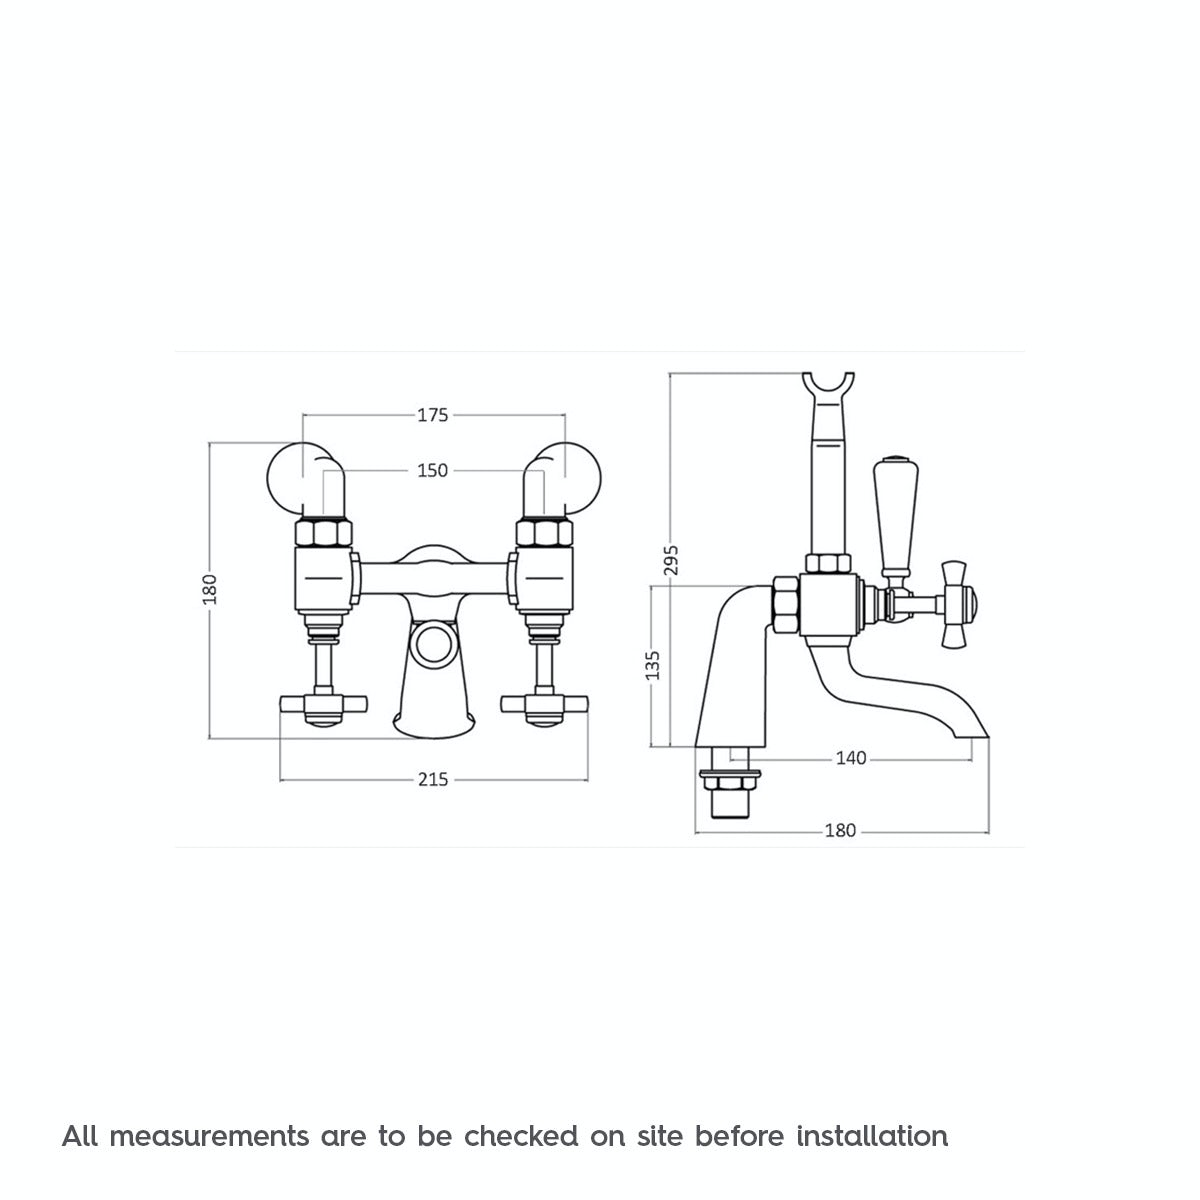 Dimensions for The Bath Co. Dulwich bath shower mixer tap